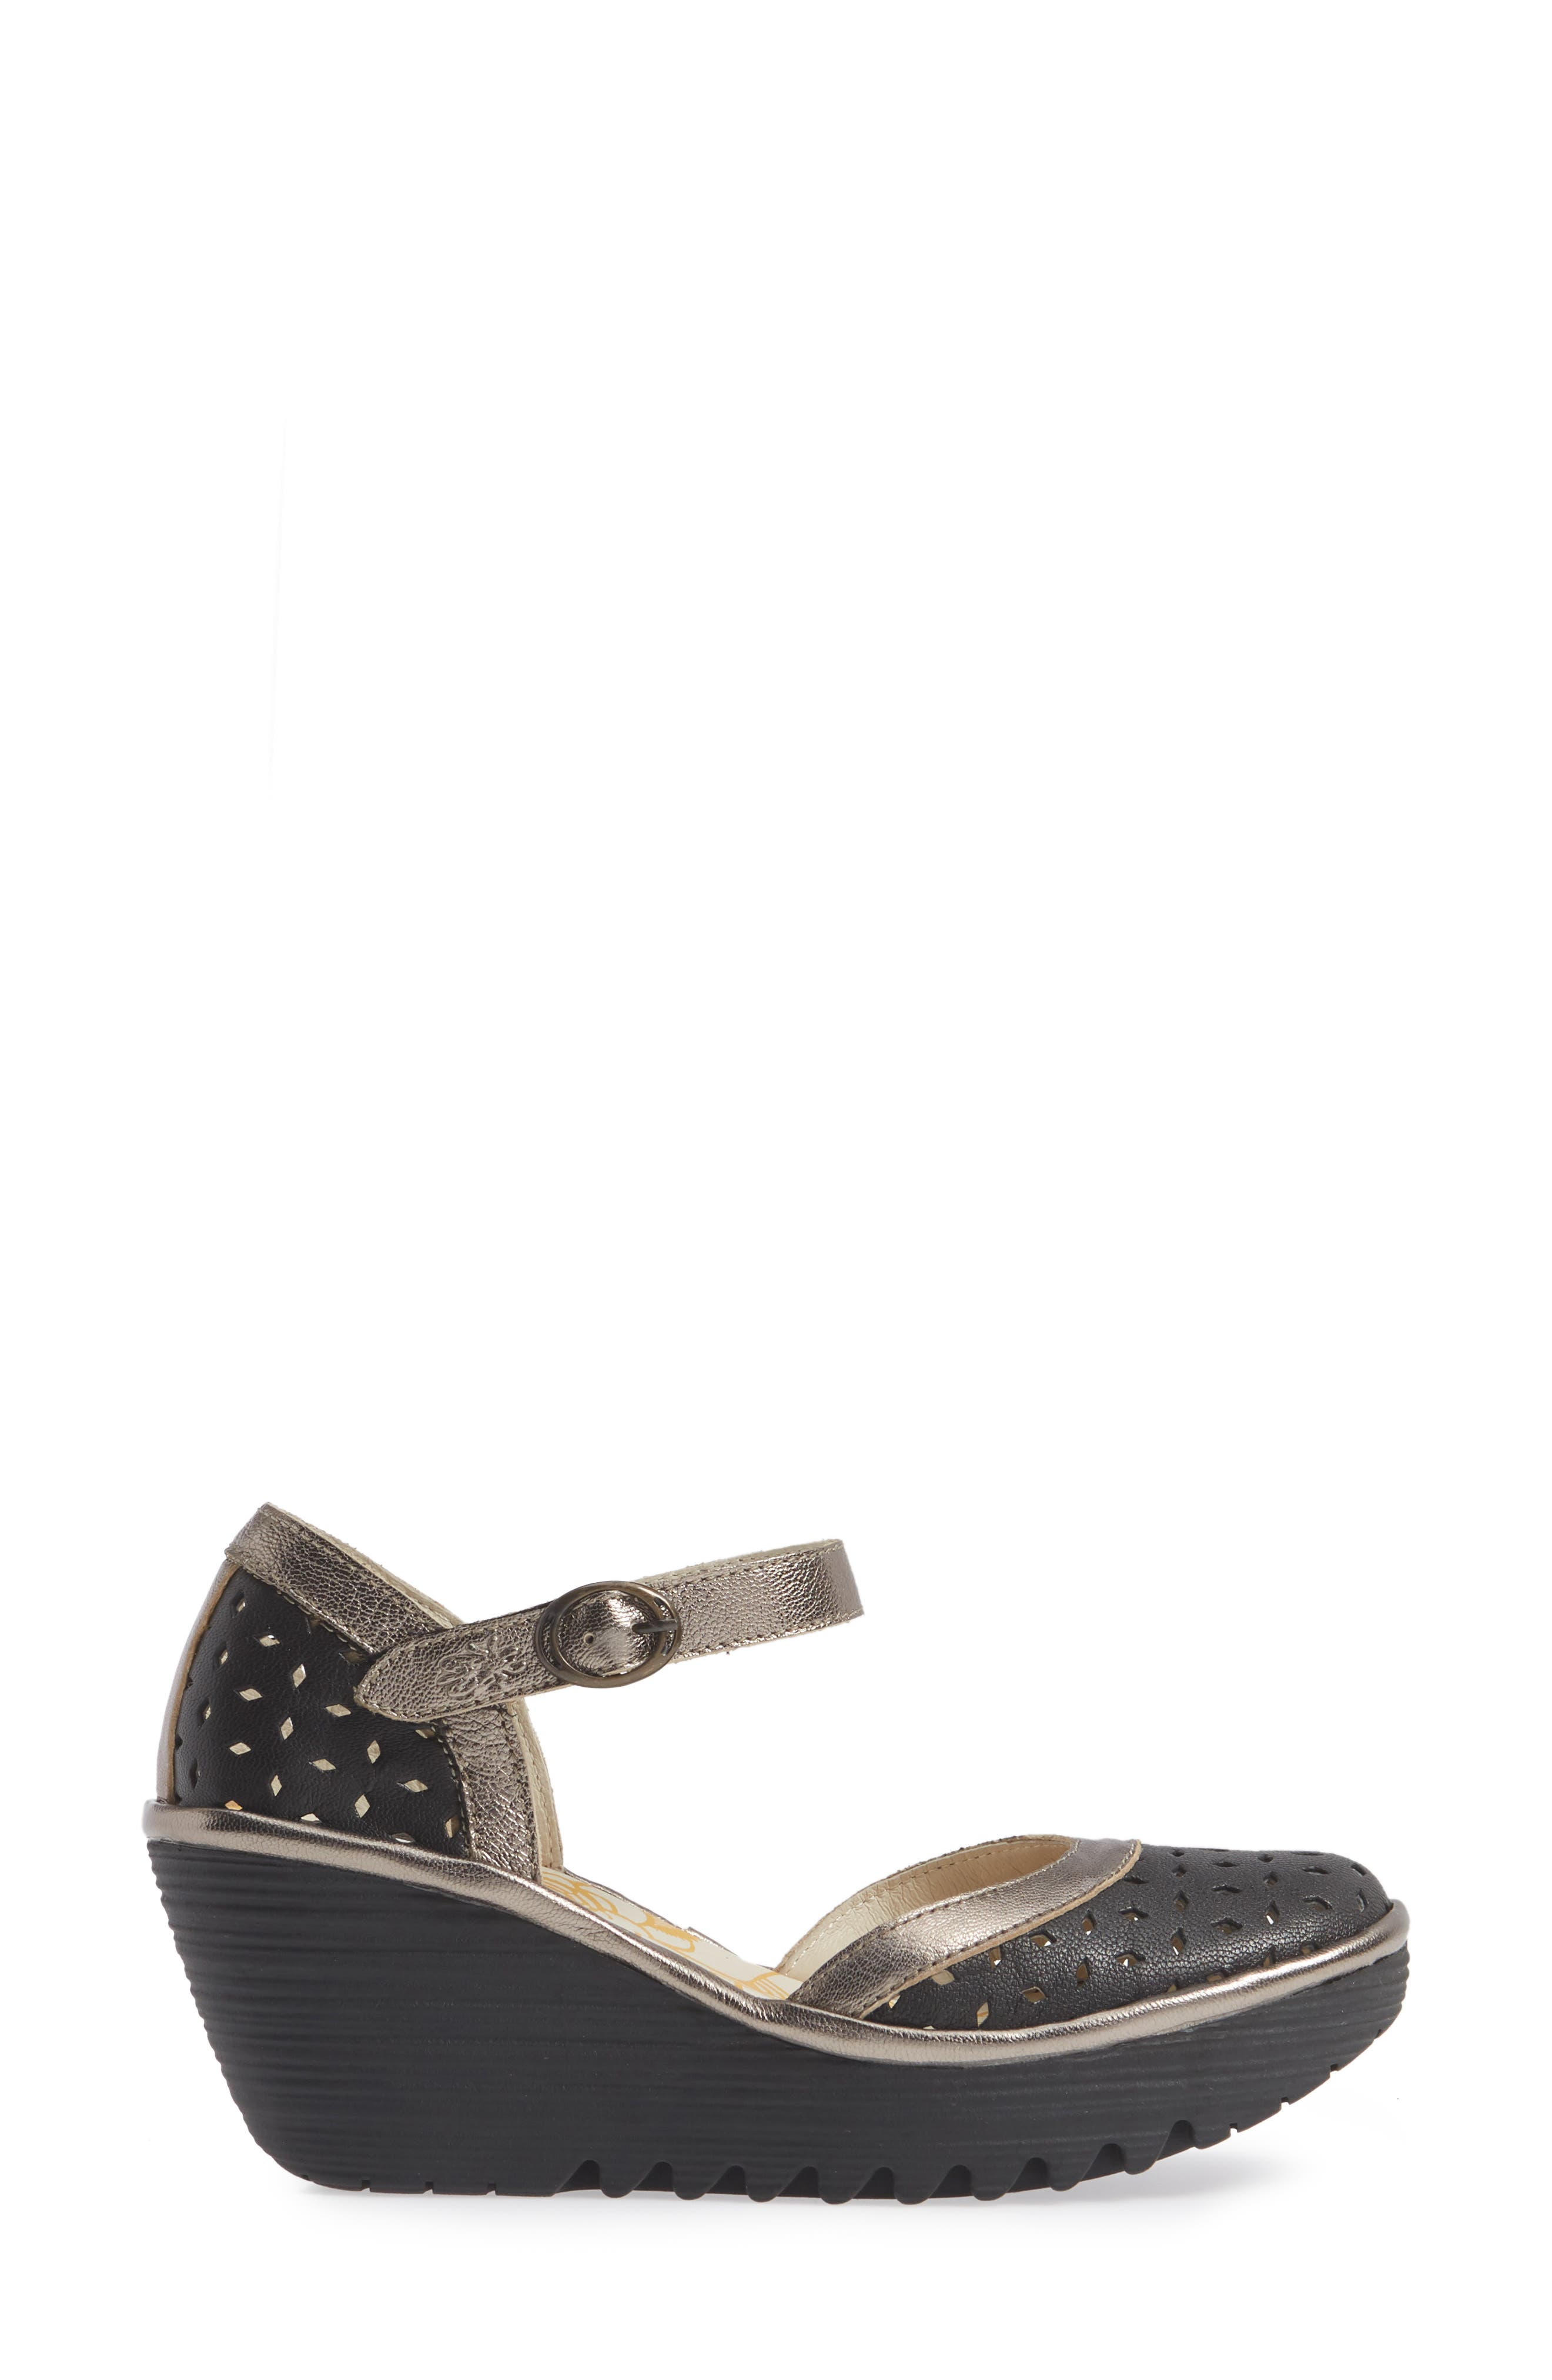 FLY LONDON,                             Yven Wedge,                             Alternate thumbnail 3, color,                             BLACK/ BRONZE LEATHER